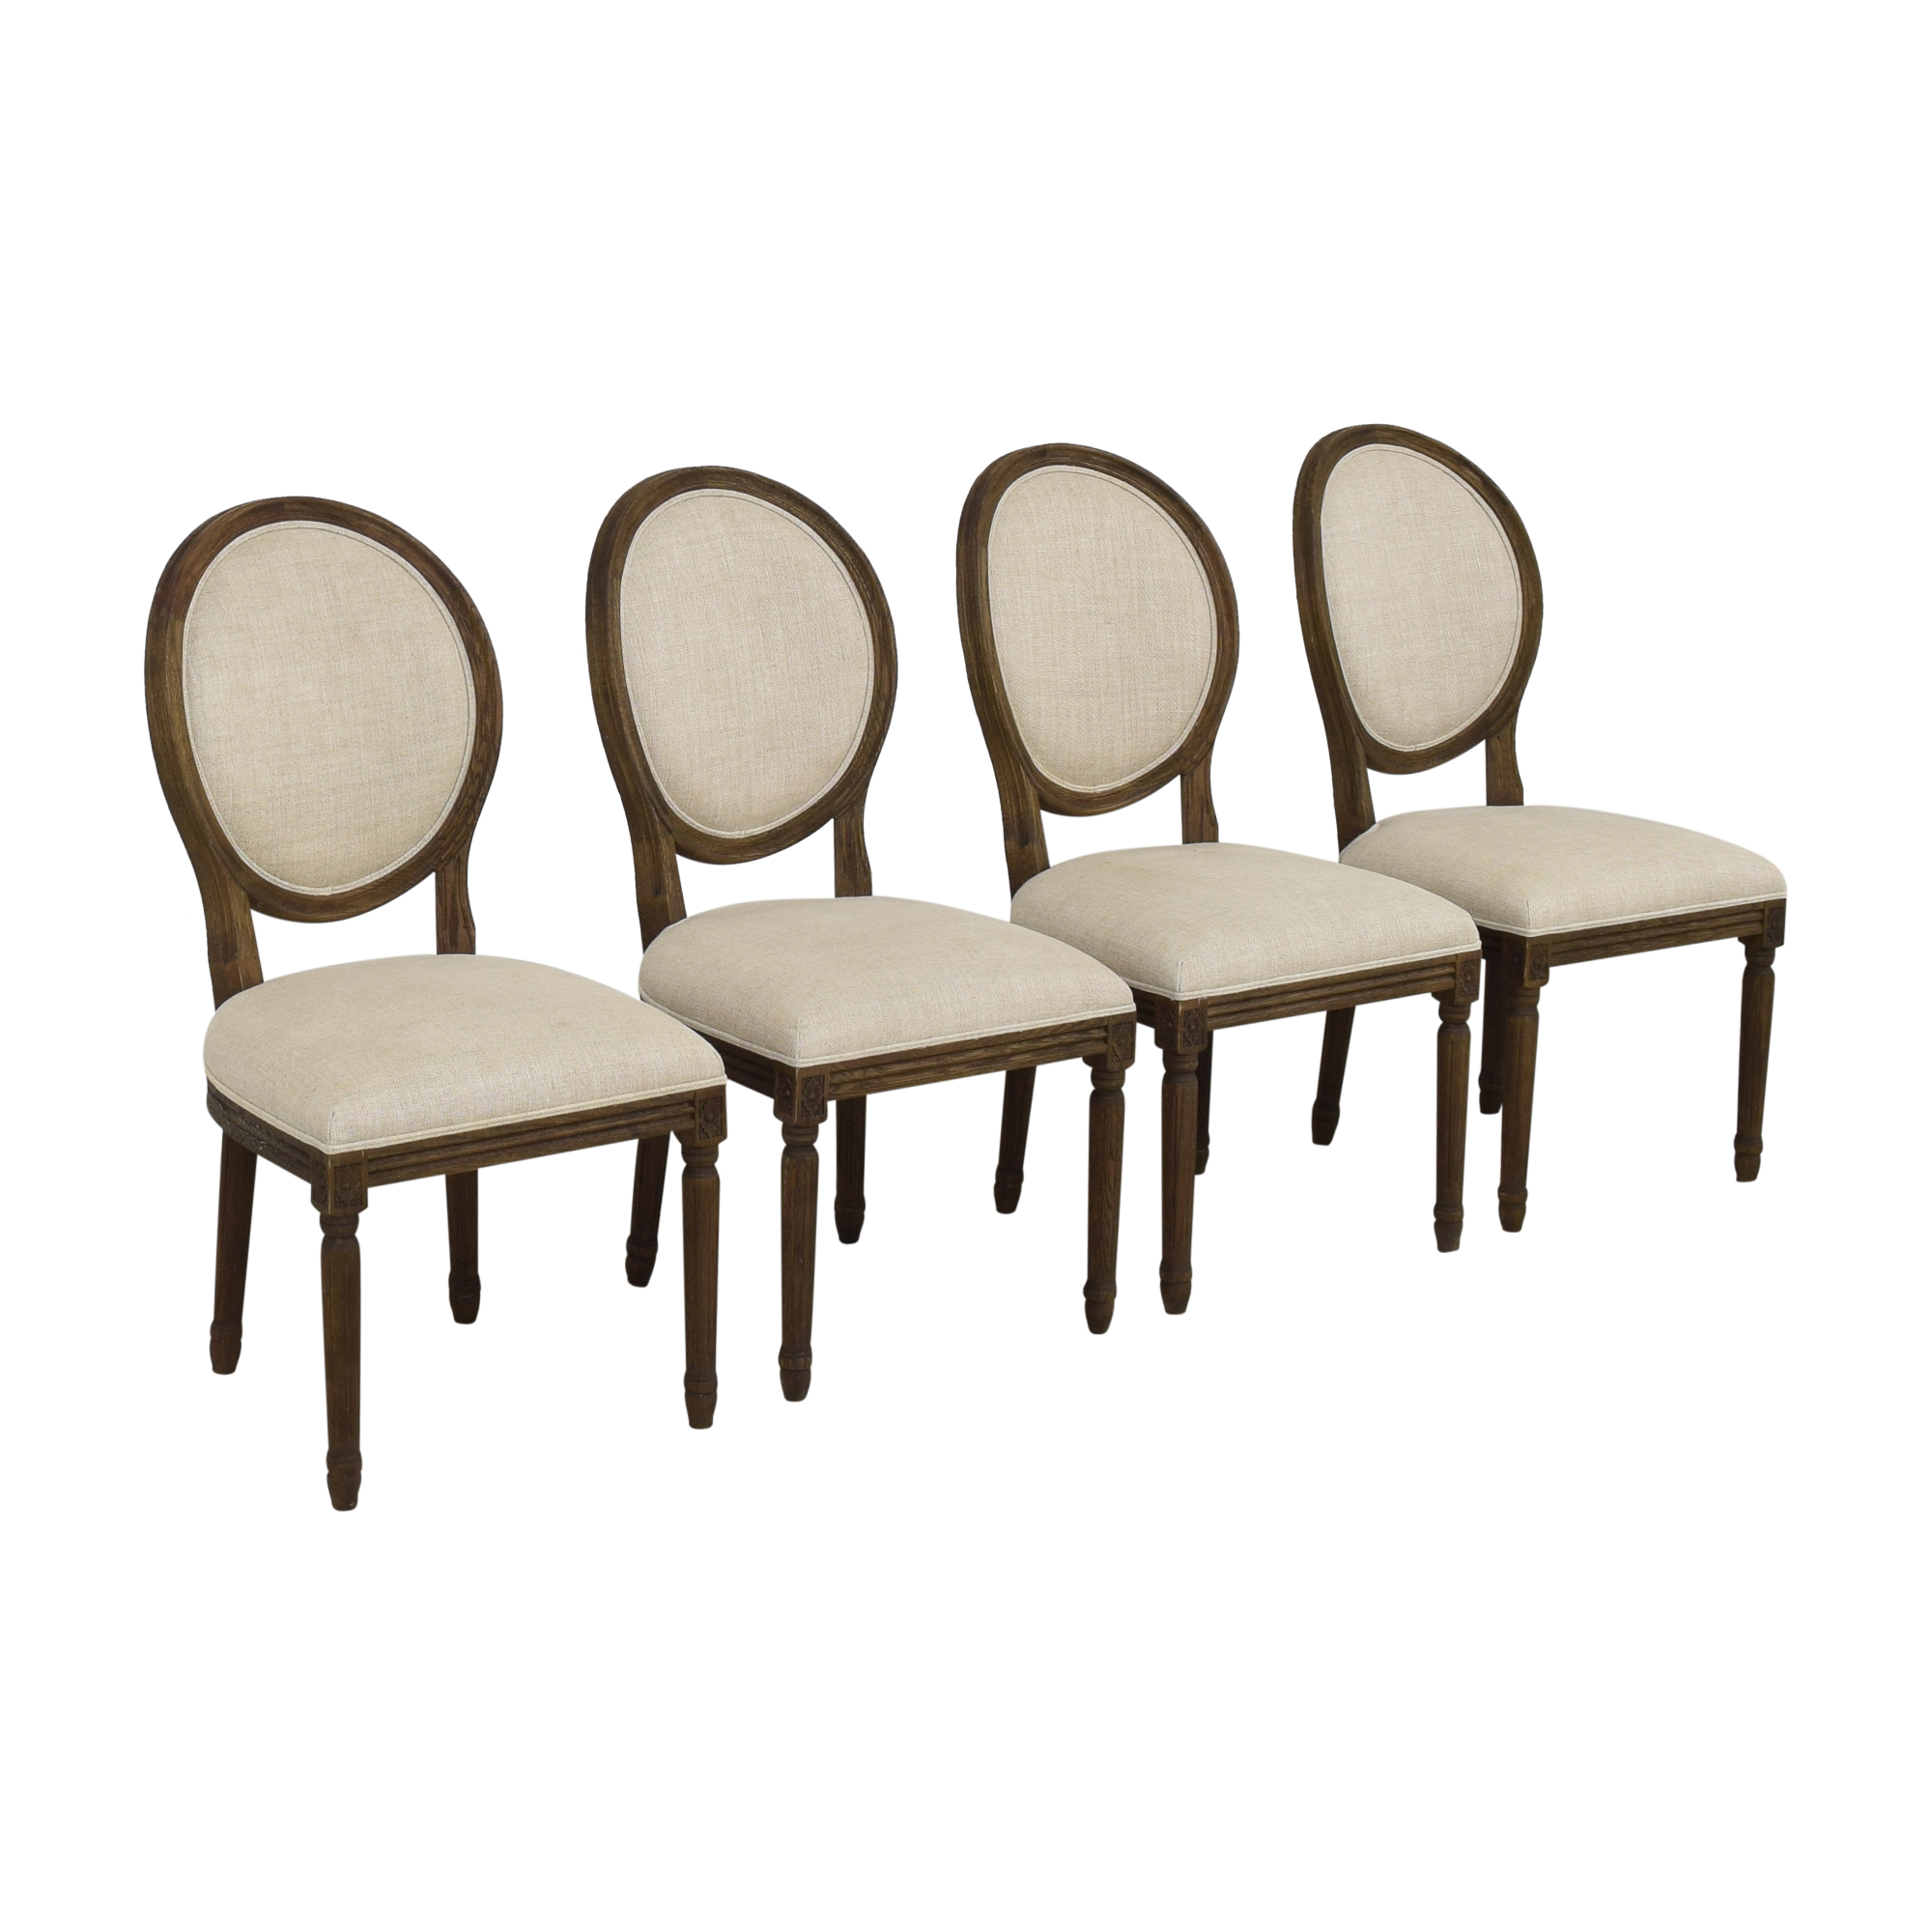 Restoration Hardware Restoration Hardware Vintage French Round Dining Side Chairs Chairs